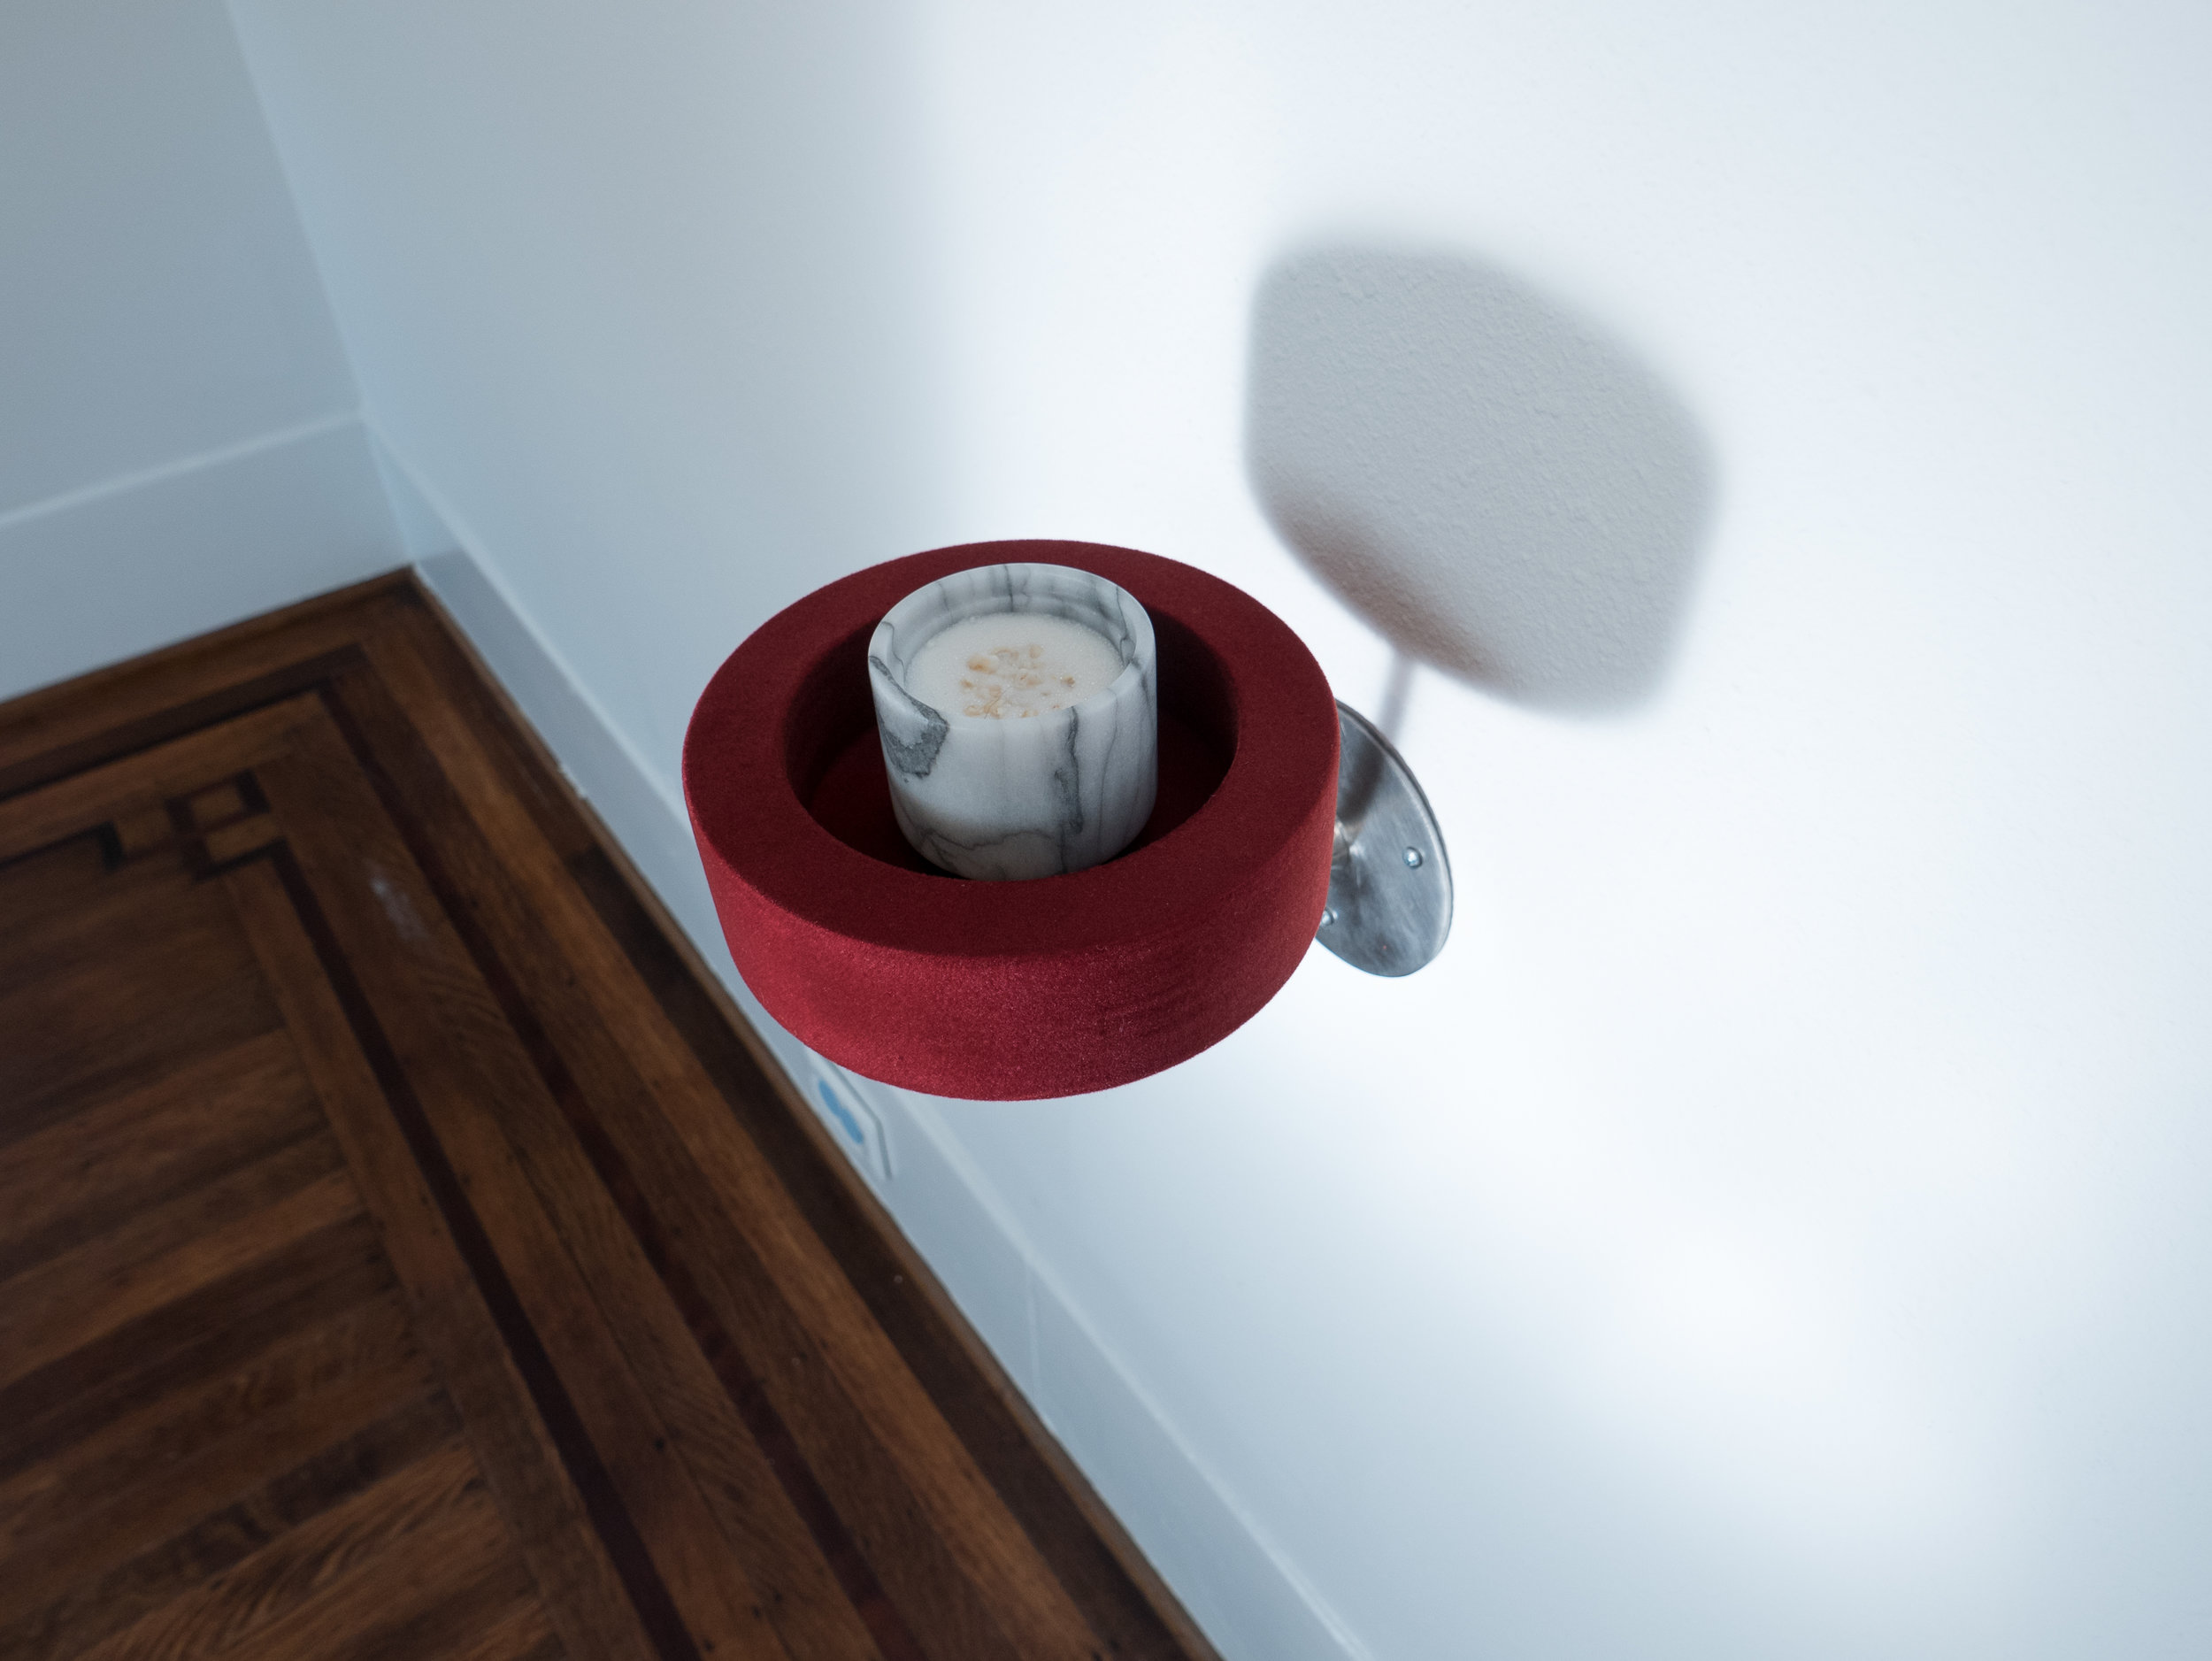 smother Installation Images (21 of 24).jpg